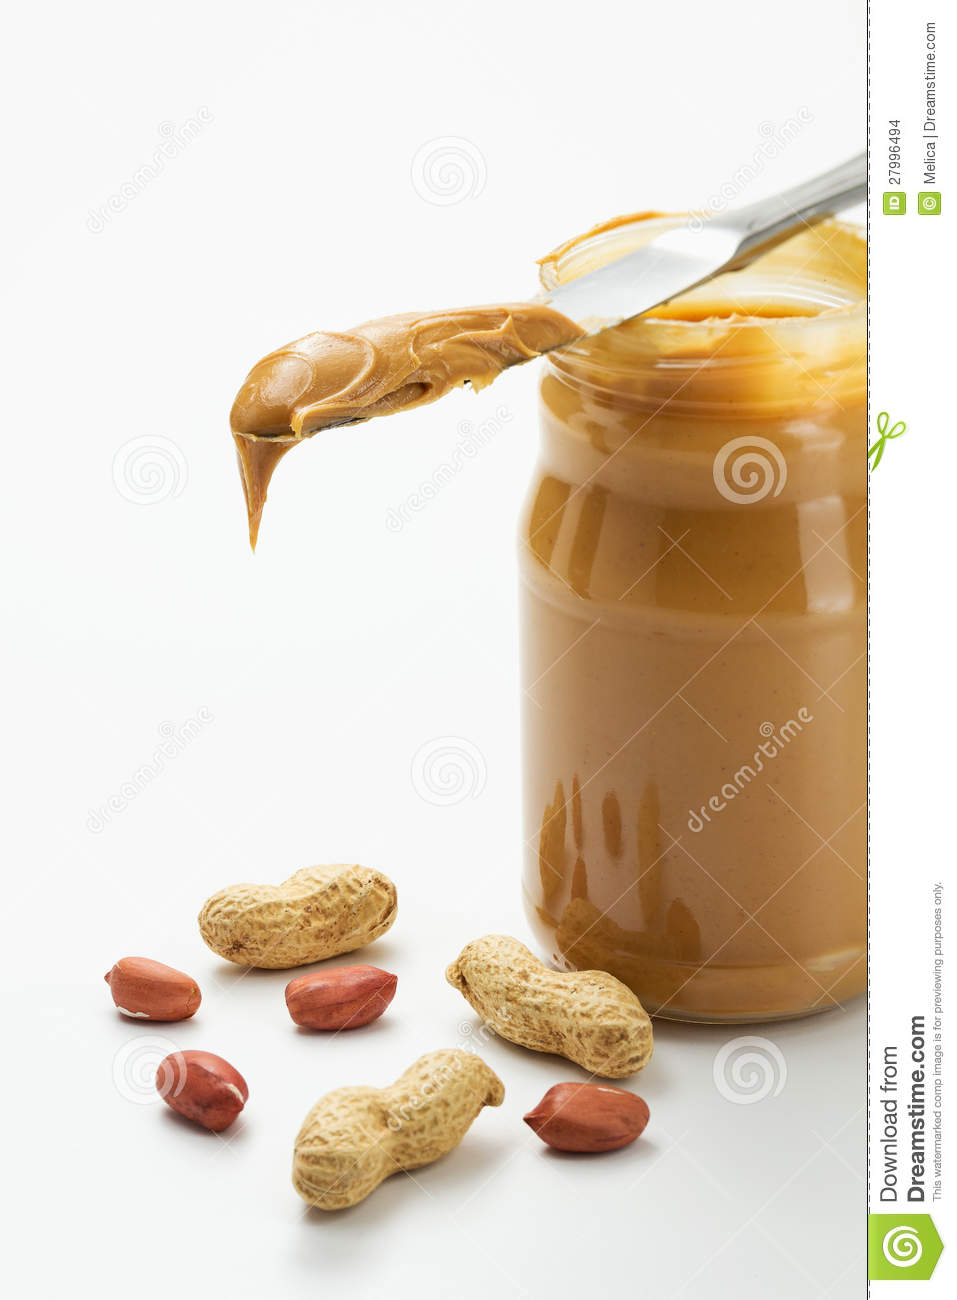 how to clean peanut butter from a jar